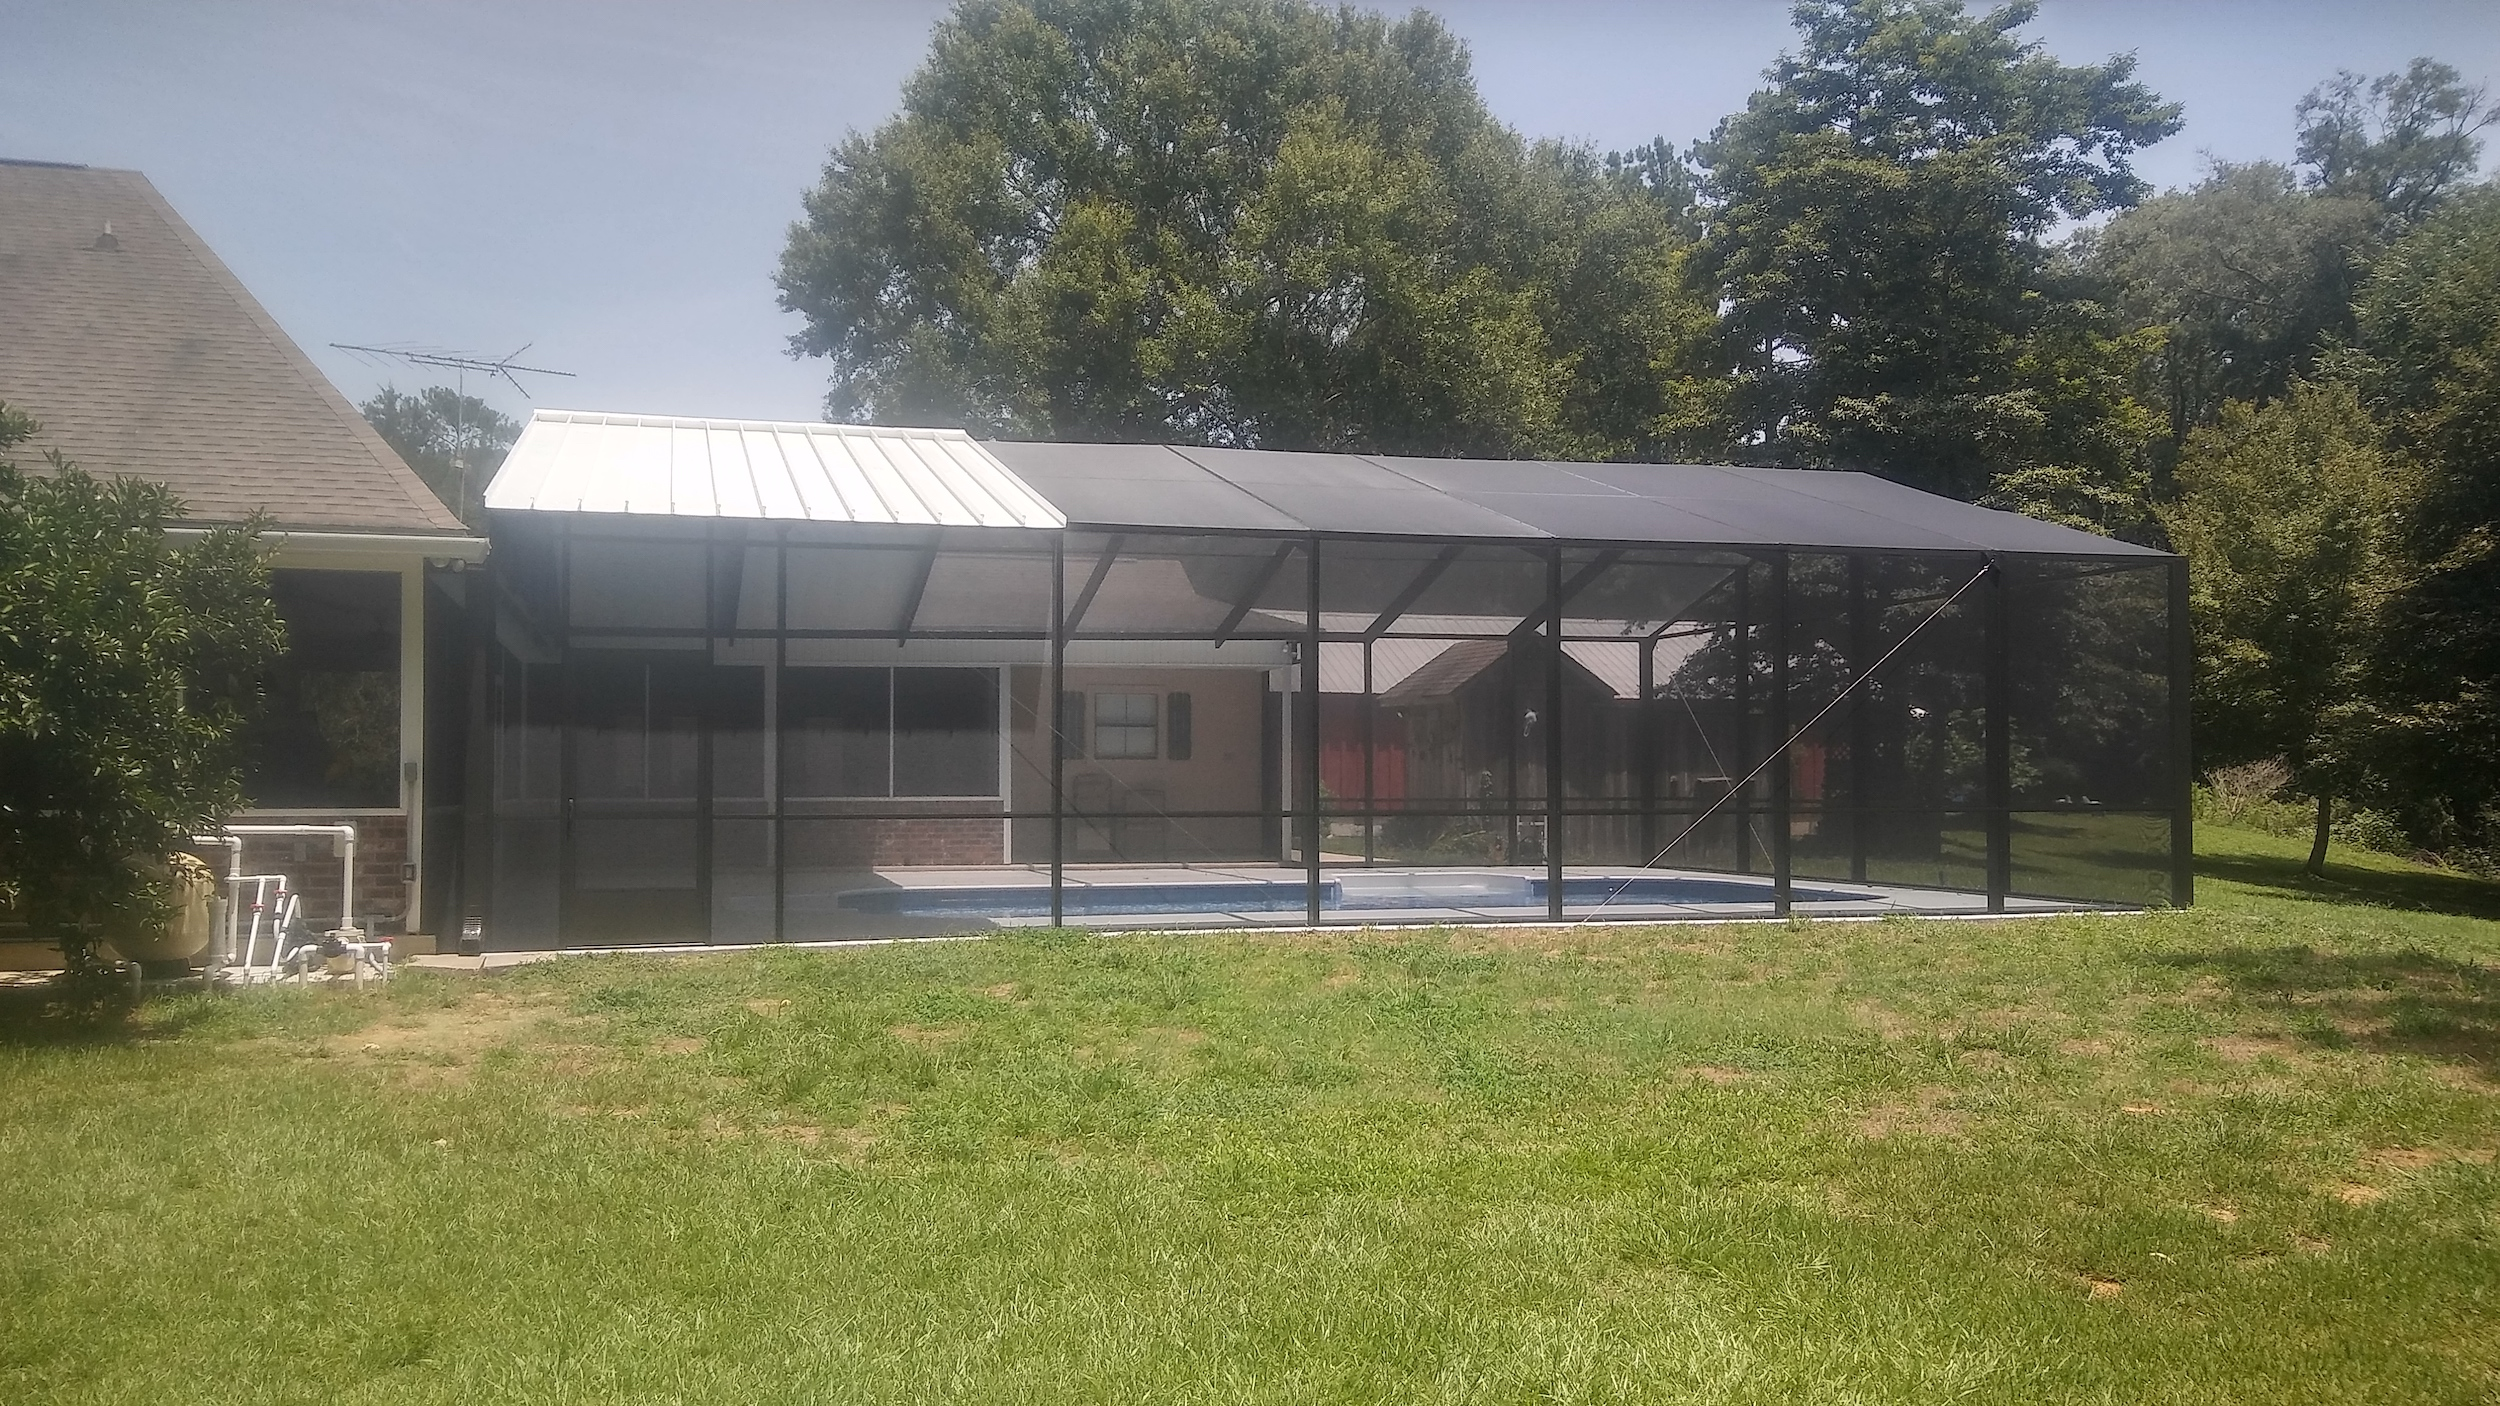 Add safety and security to your outdoor pool with an affordable aluminum pool enclosure.